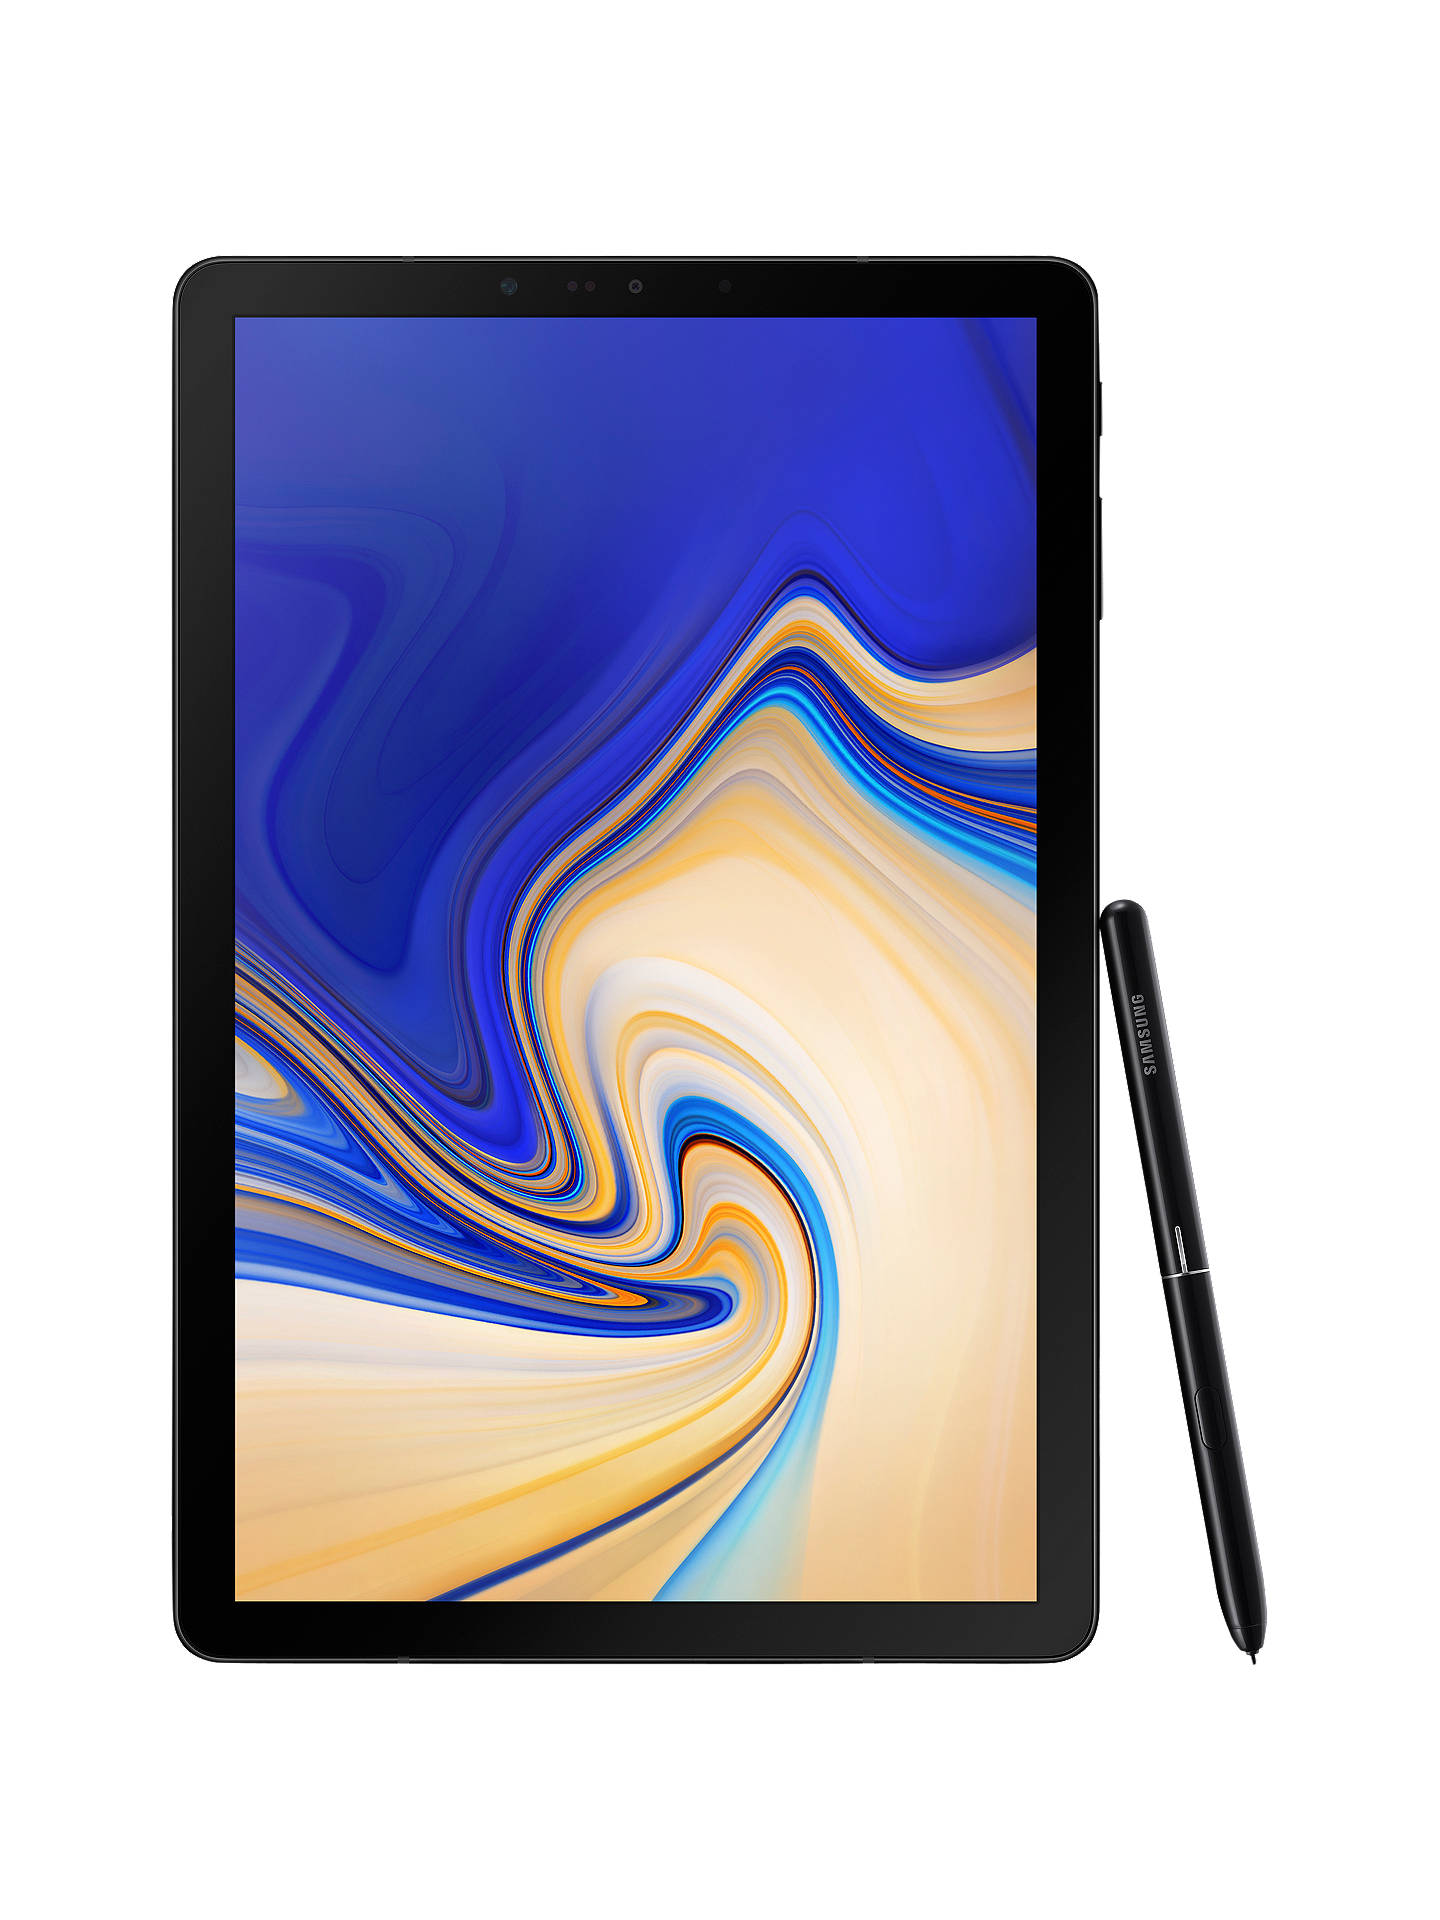 b2a8cb7f9b6 Buy Samsung Galaxy Tab S4 Tablet with S Pen